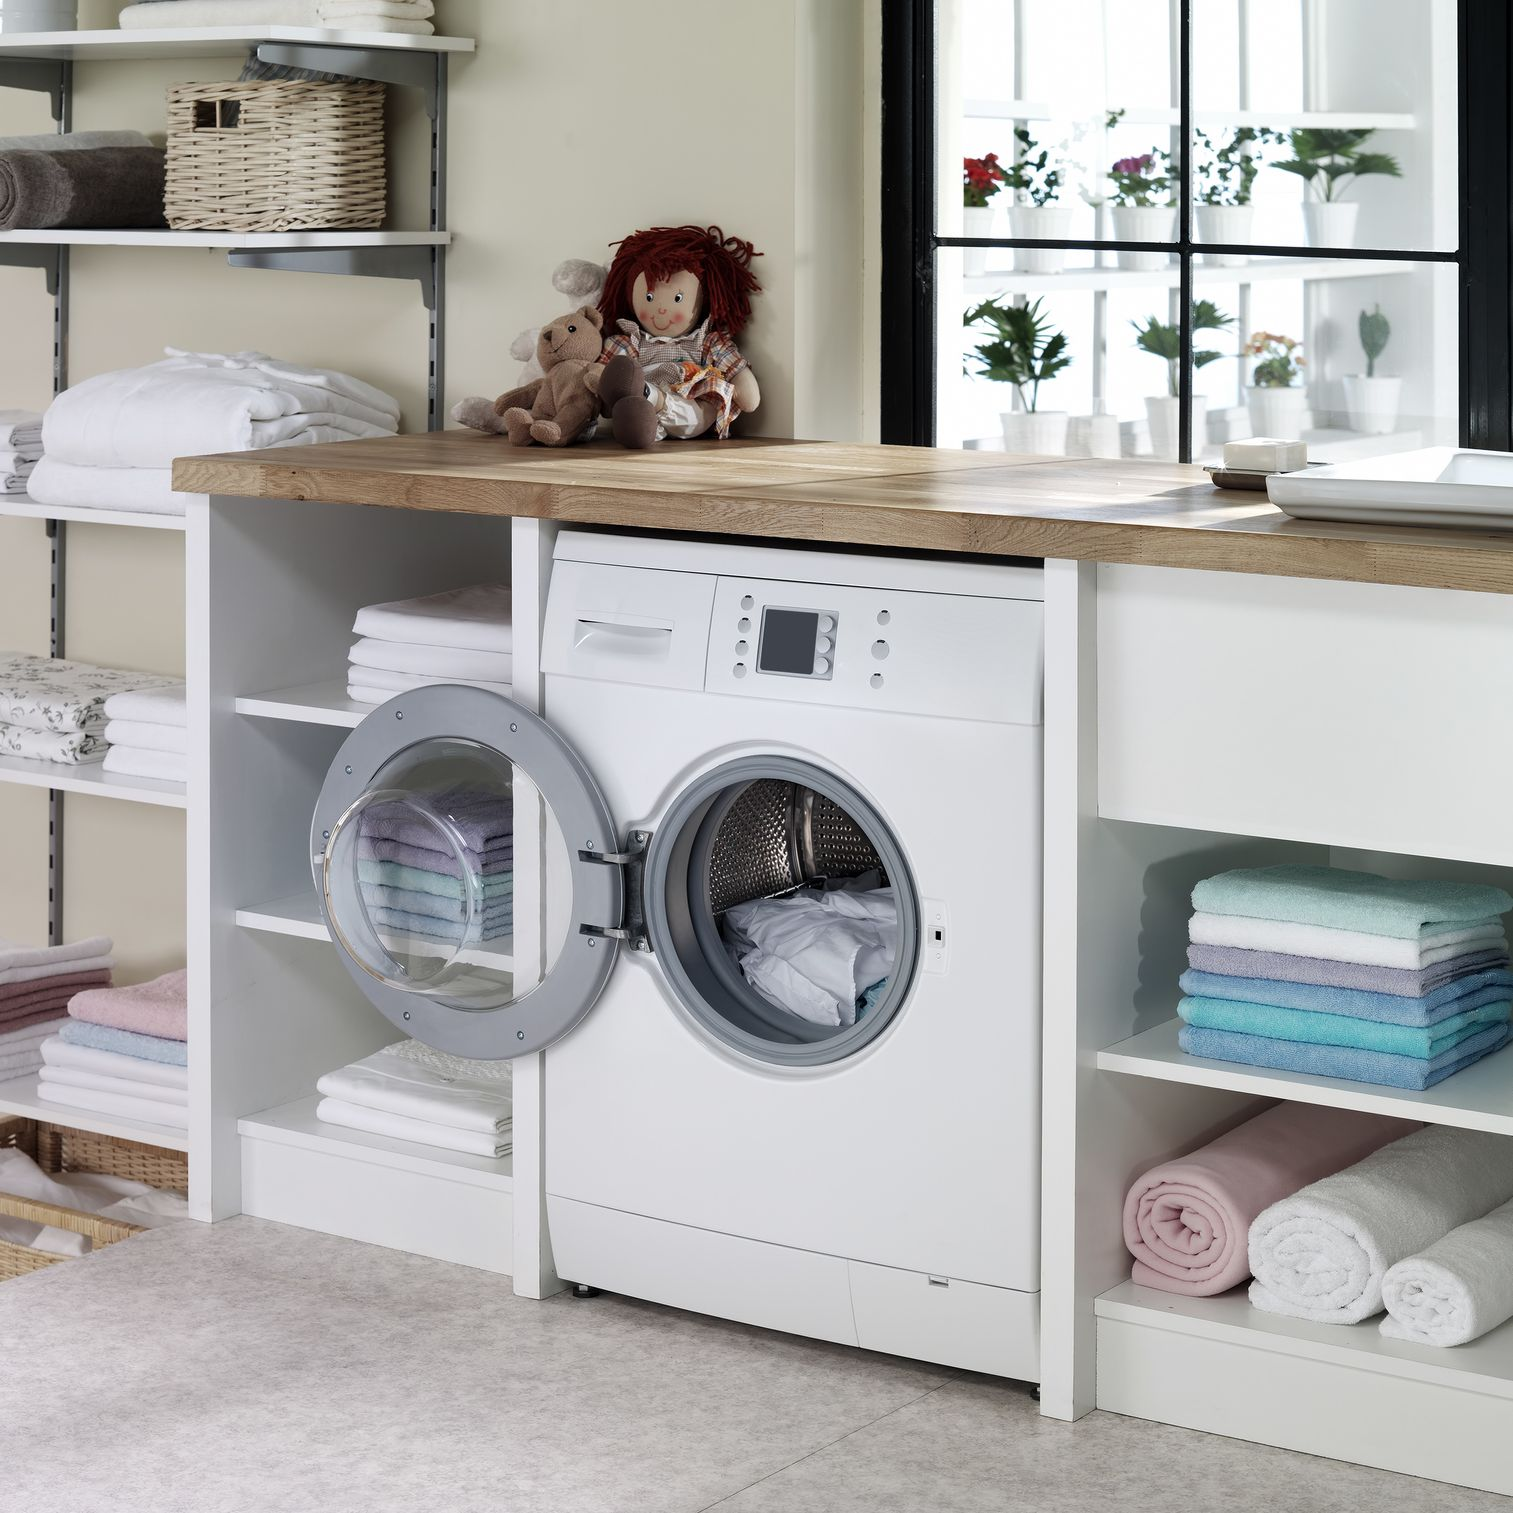 Laundry Room Countertop Options